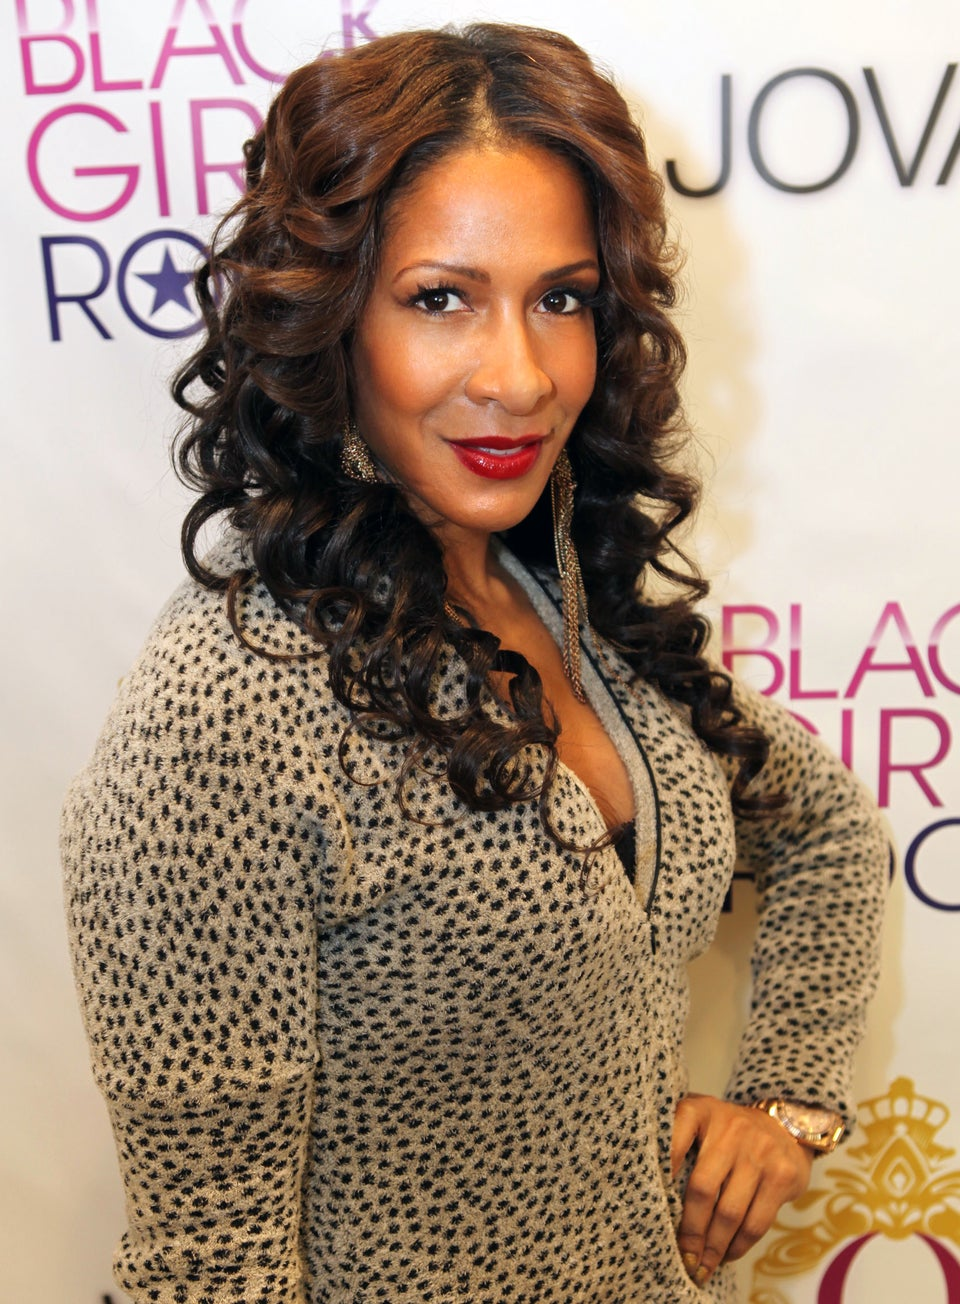 Sheree Whitfield Quits 'Housewives,' Says She's 'Tired of the Fighting and Cattiness'